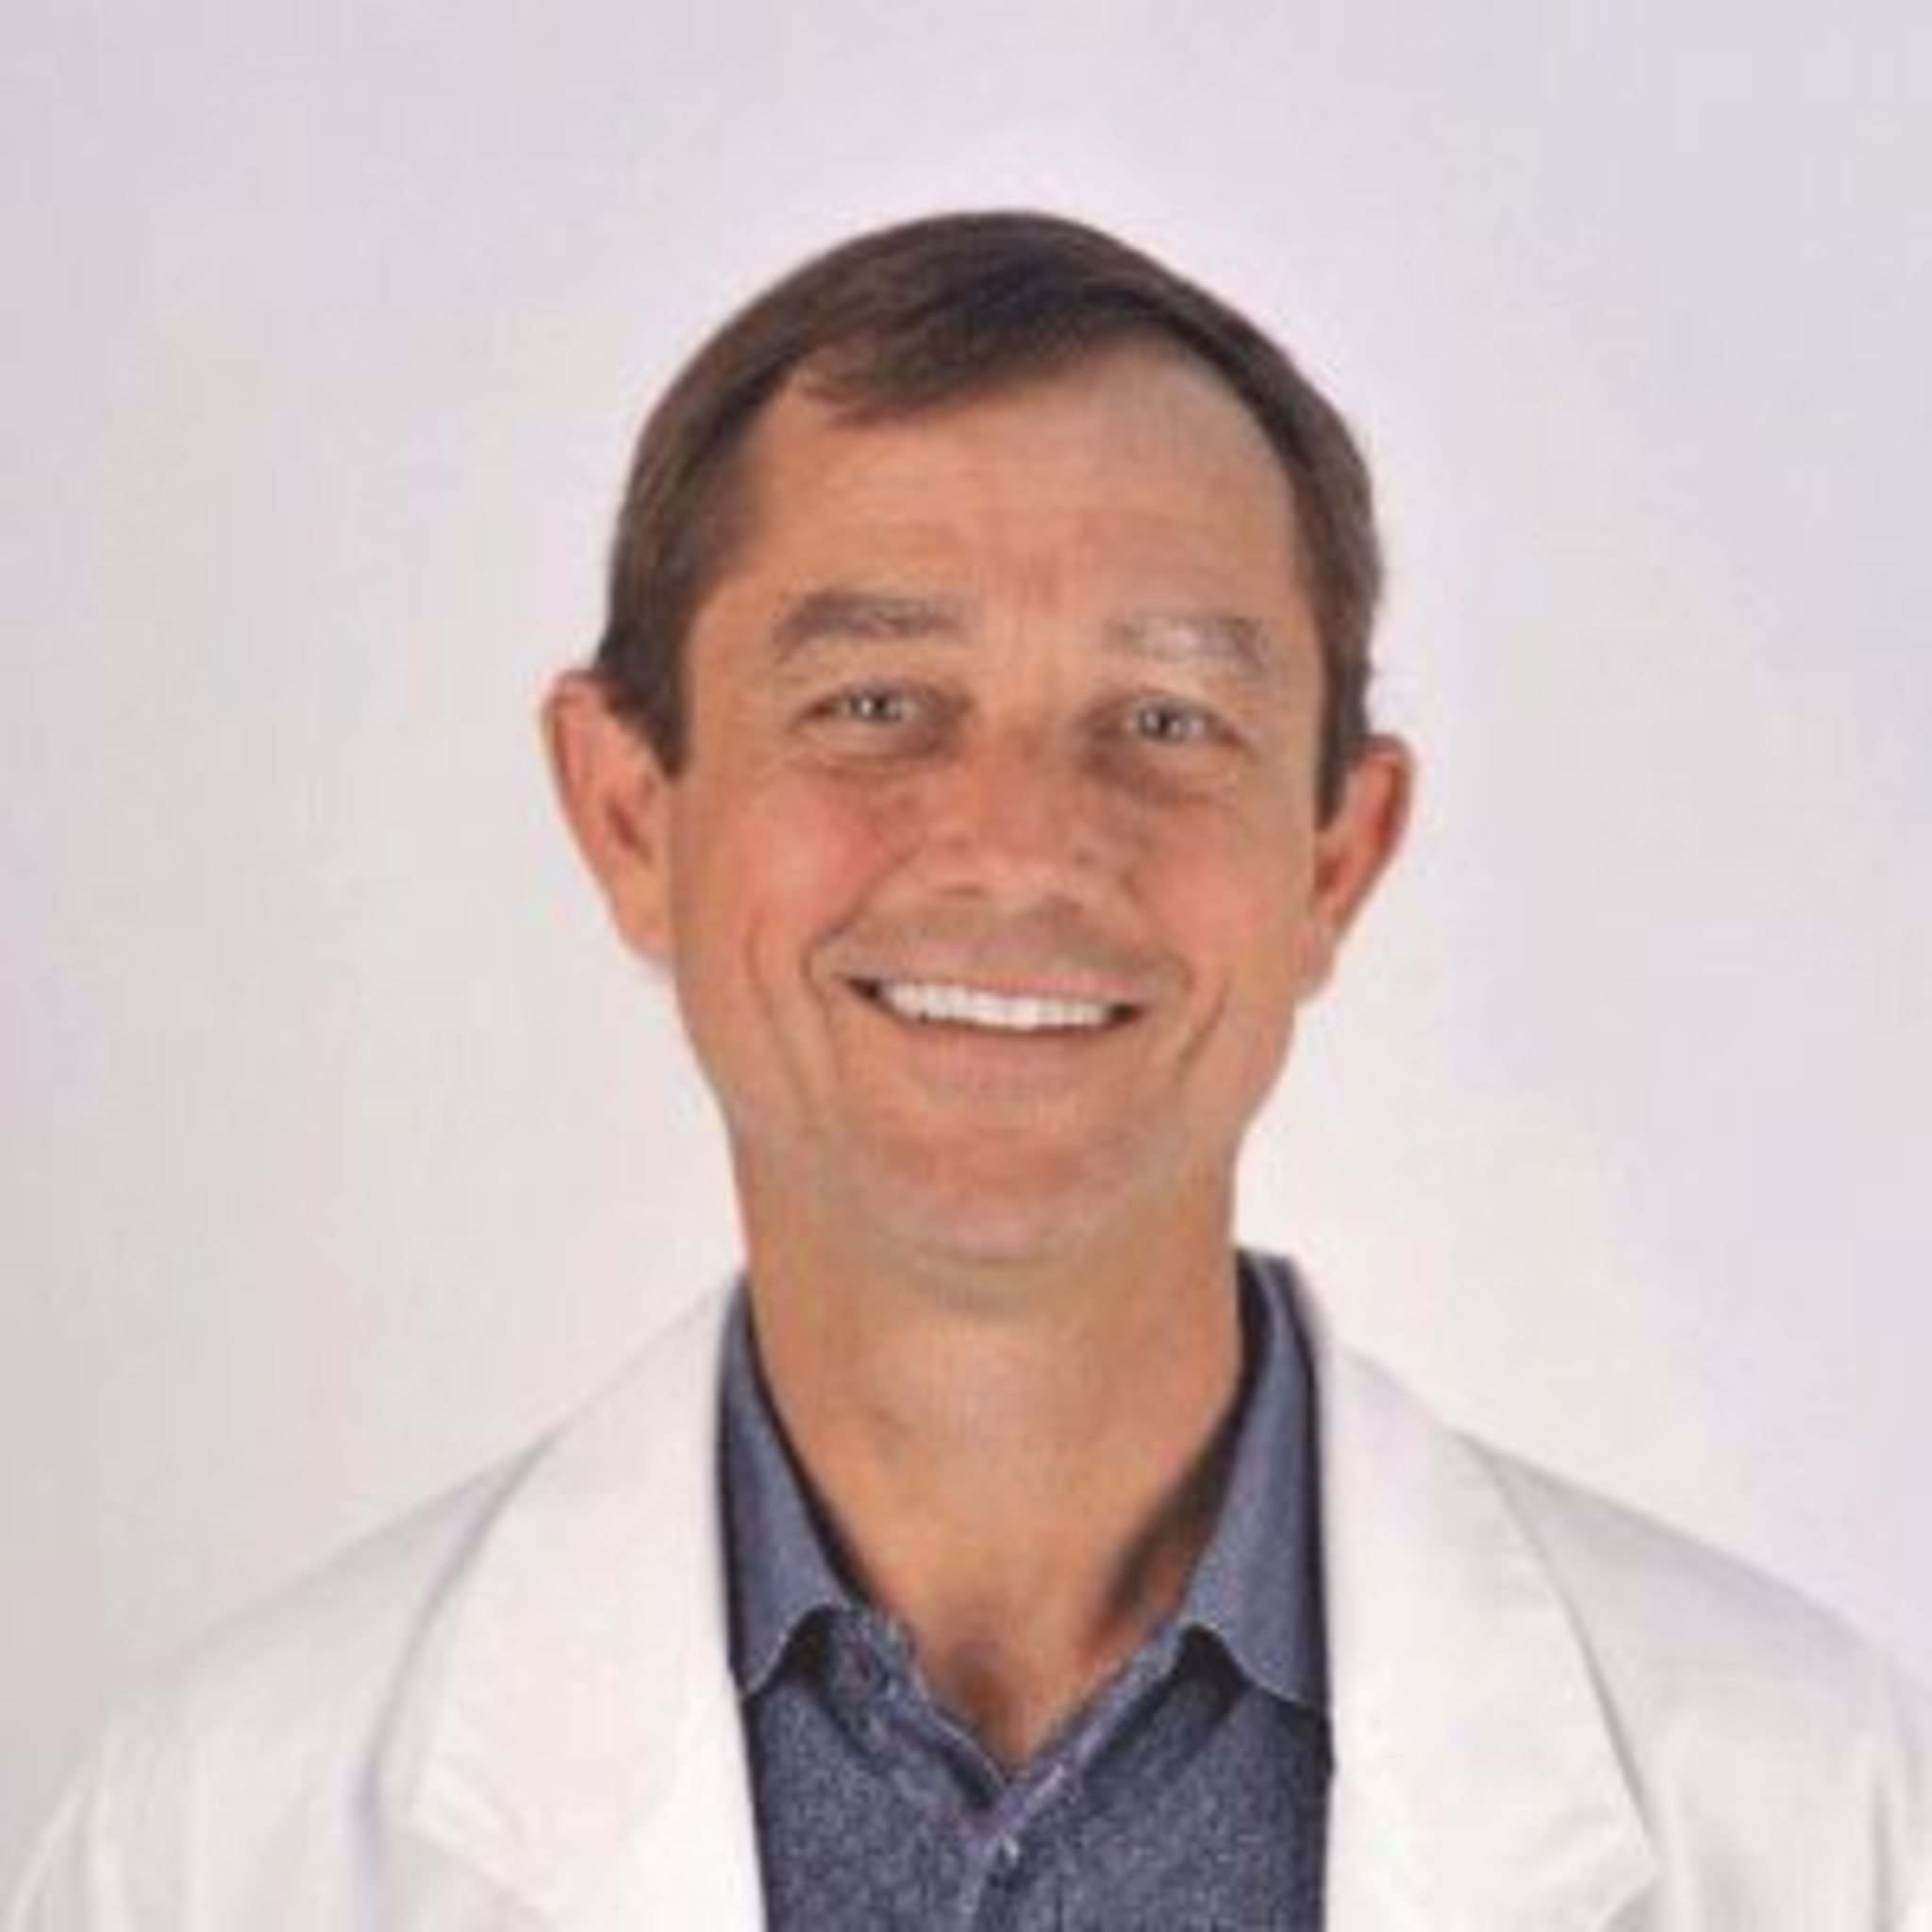 Winkler-based Dr. Eric Lane has spoken publicly he is concerned doctors in the area with some of Manitoba's lowest vaccination rates are looking to move.